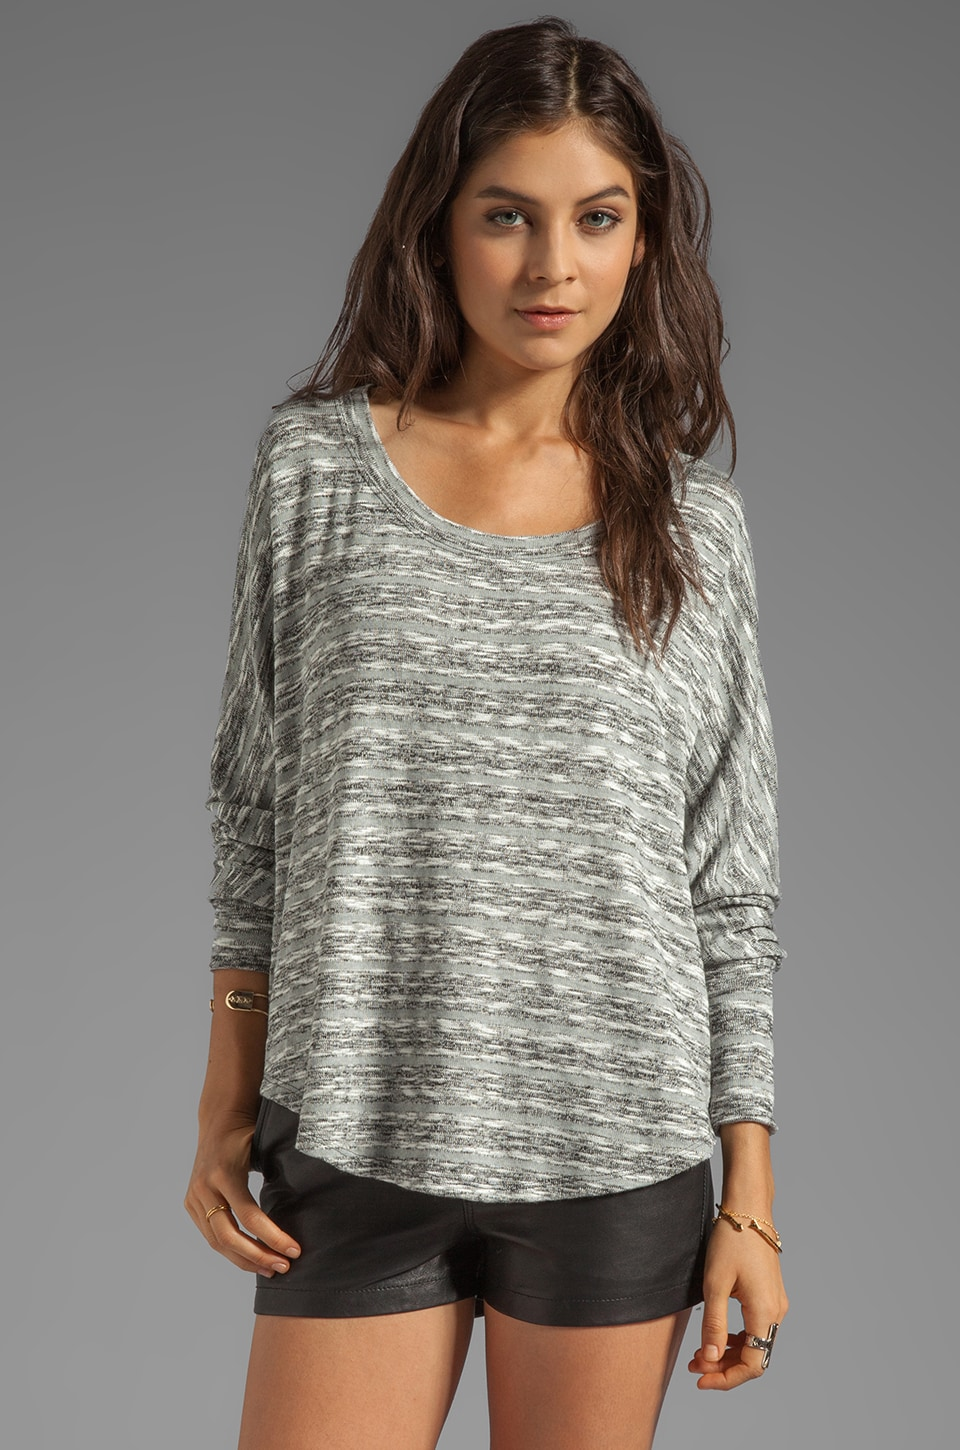 Saint Grace Mica Slub Shirttail Top in Fog Stripe